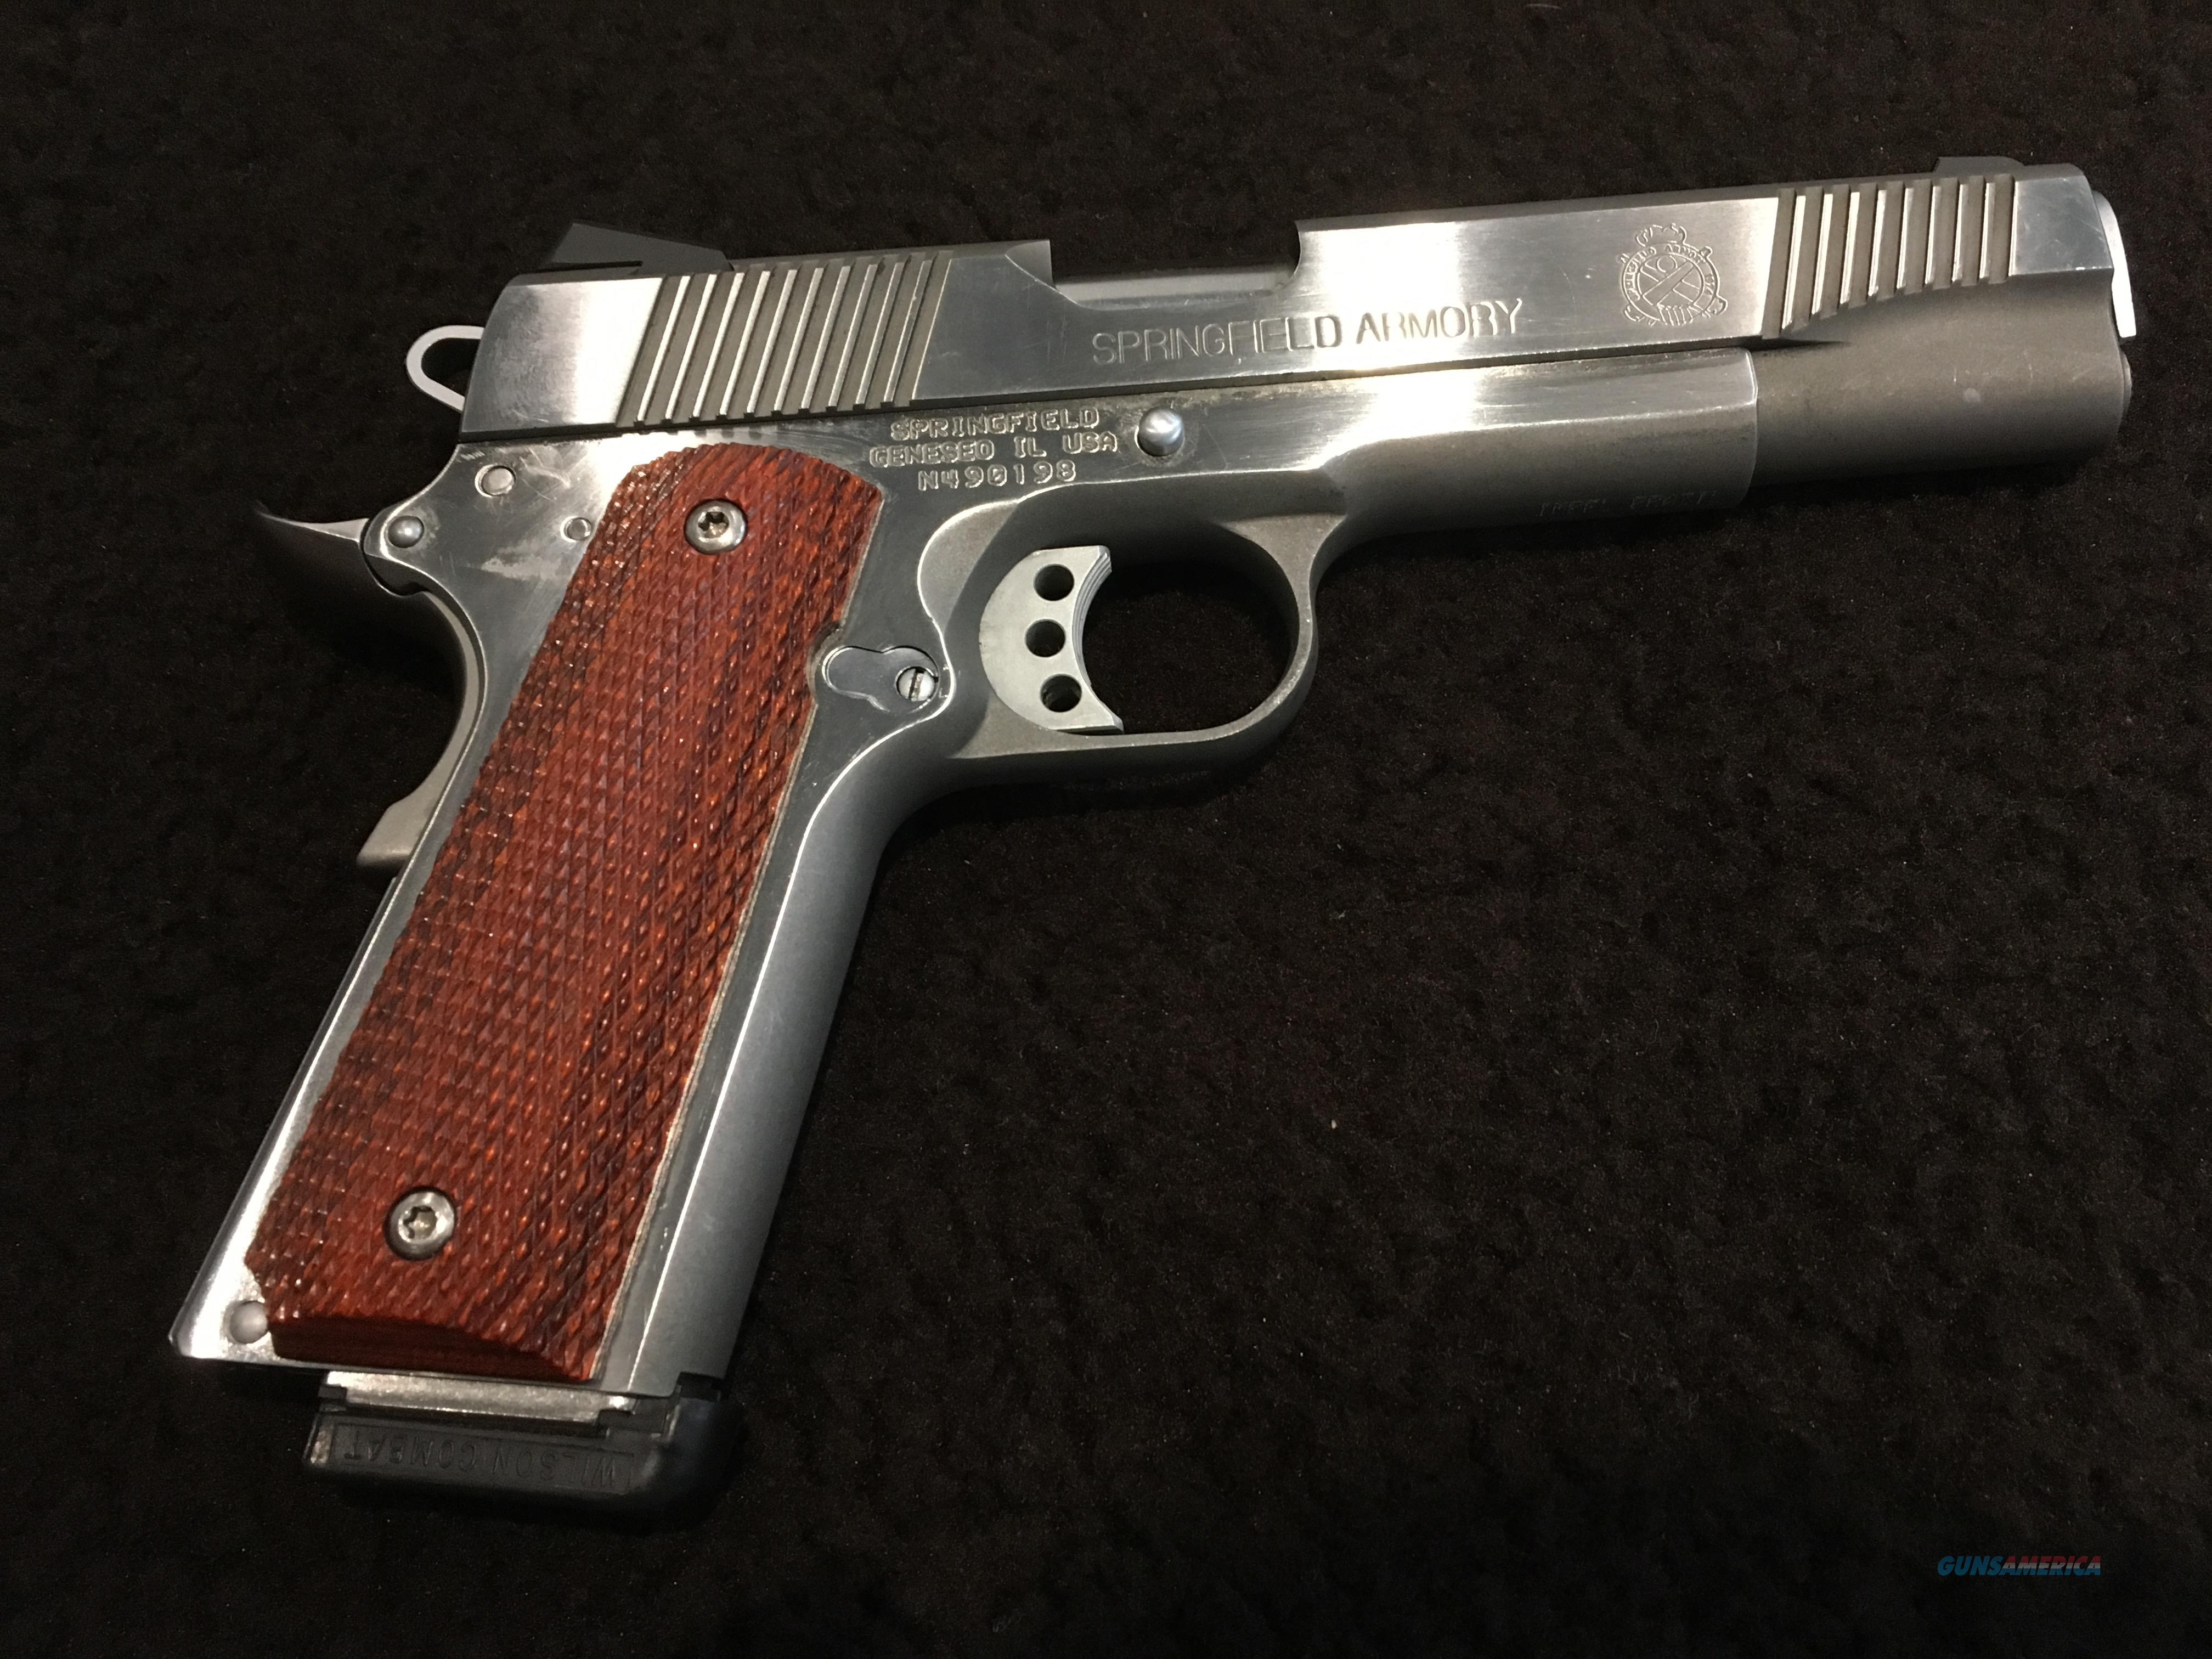 Springfield Armory 1911 with Wilson Combat Thumb Safety, Grip Safety, and Ejector  Guns > Pistols > Springfield Armory Pistols > 1911 Type